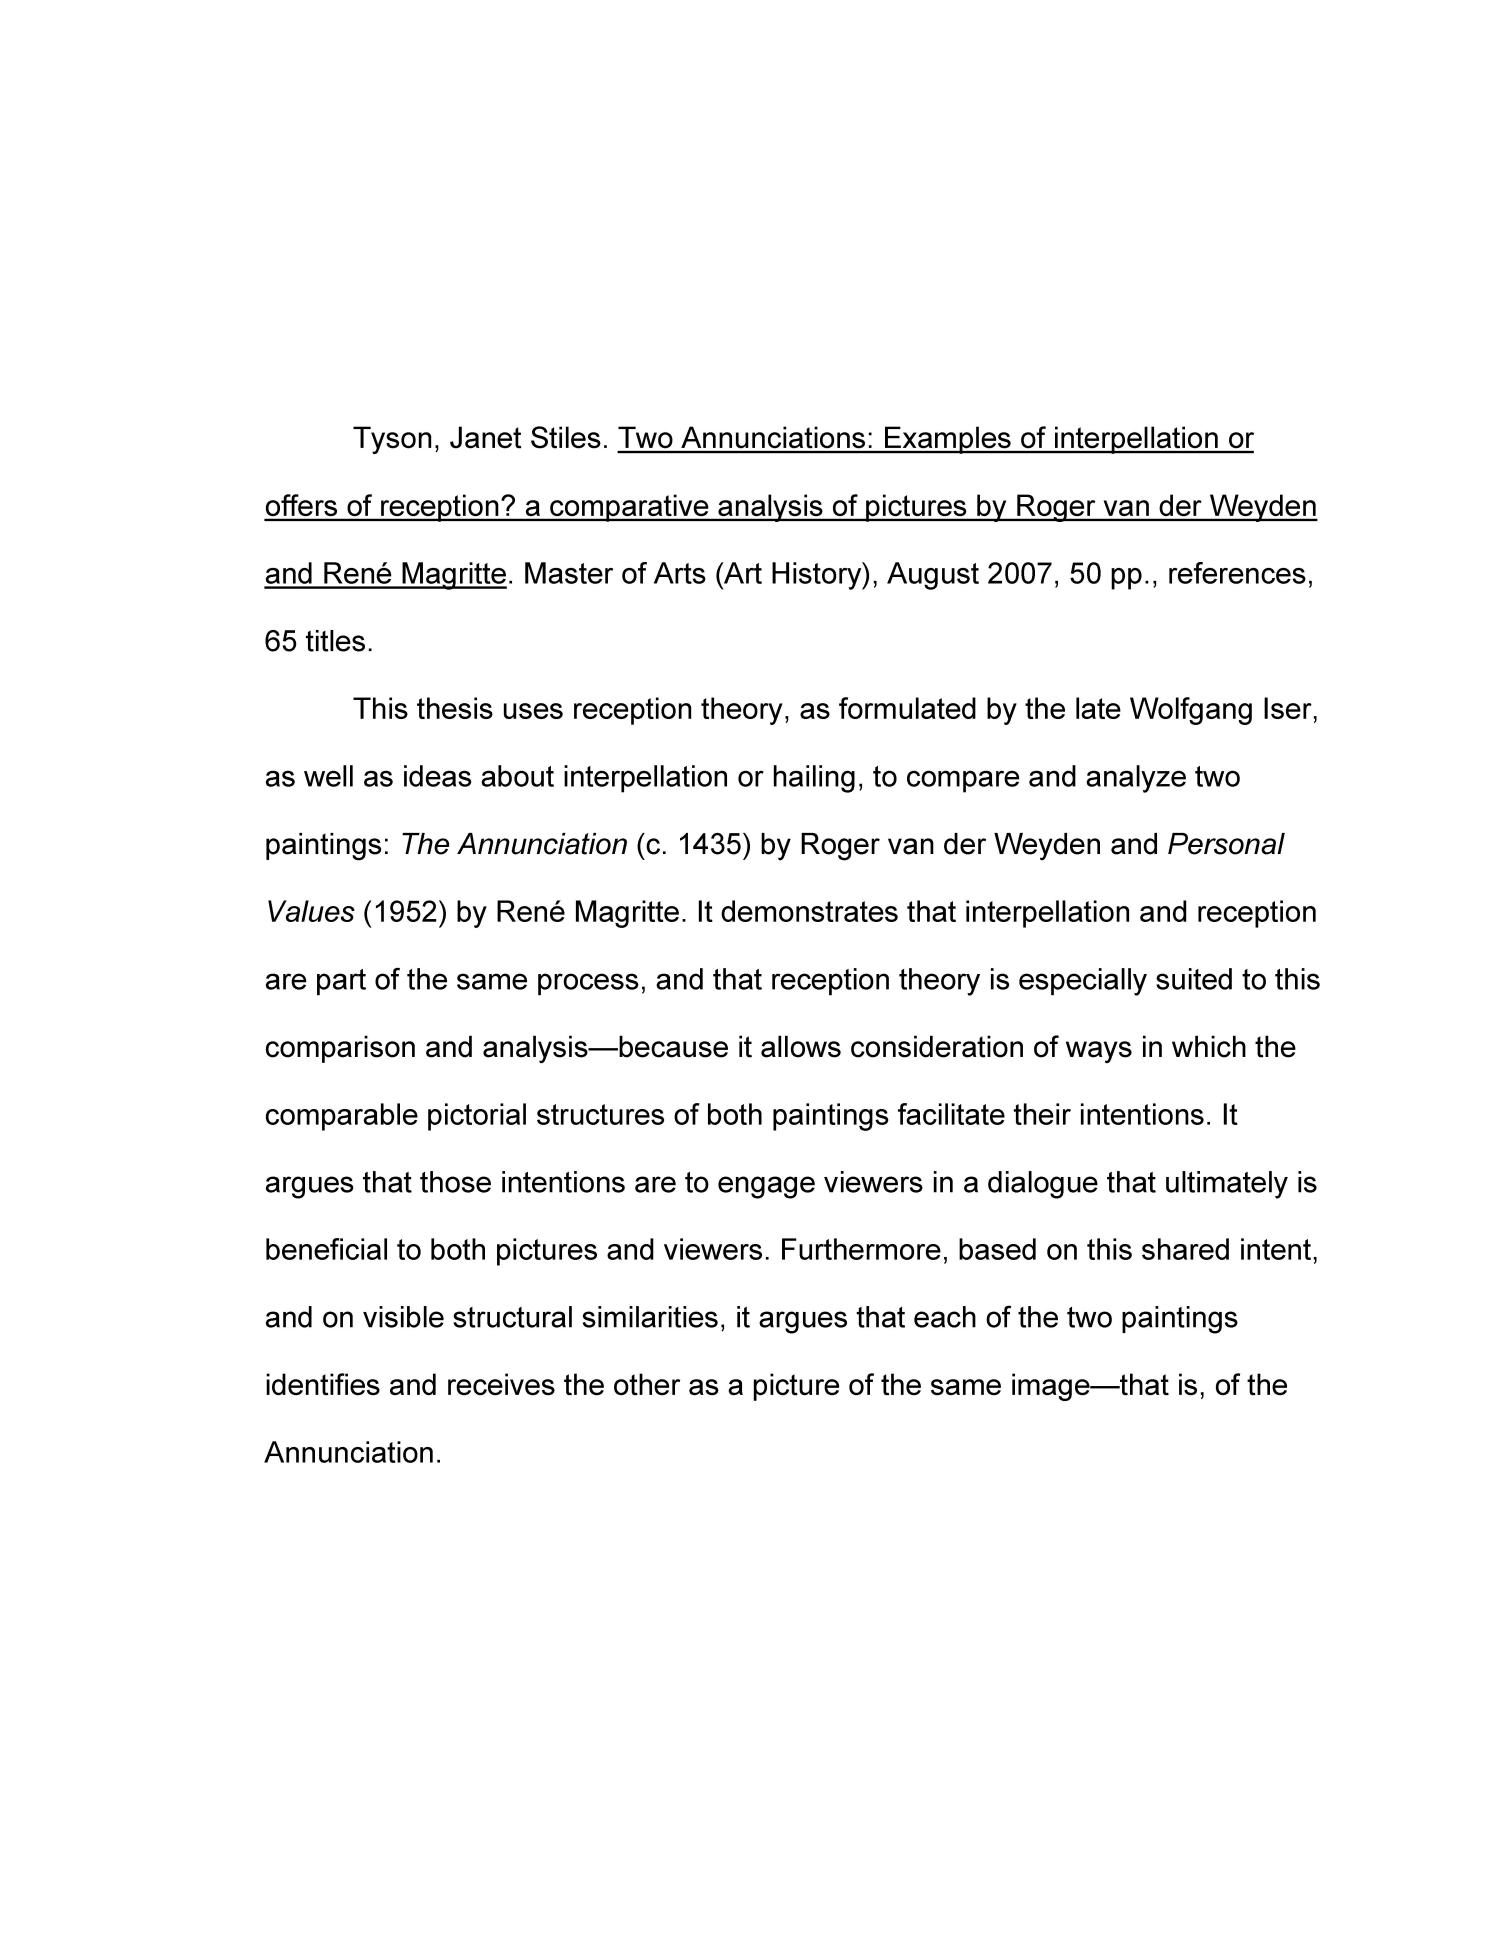 Custom Essay Paper Thumbnail Image Of Item Number  In Two Annunciations Examples Of  Interpellation Or How To Write Essay Proposal also How To Start A Proposal Essay Two Annunciations Examples Of Interpellation Or Offers Of Reception  Good Thesis Statement Examples For Essays